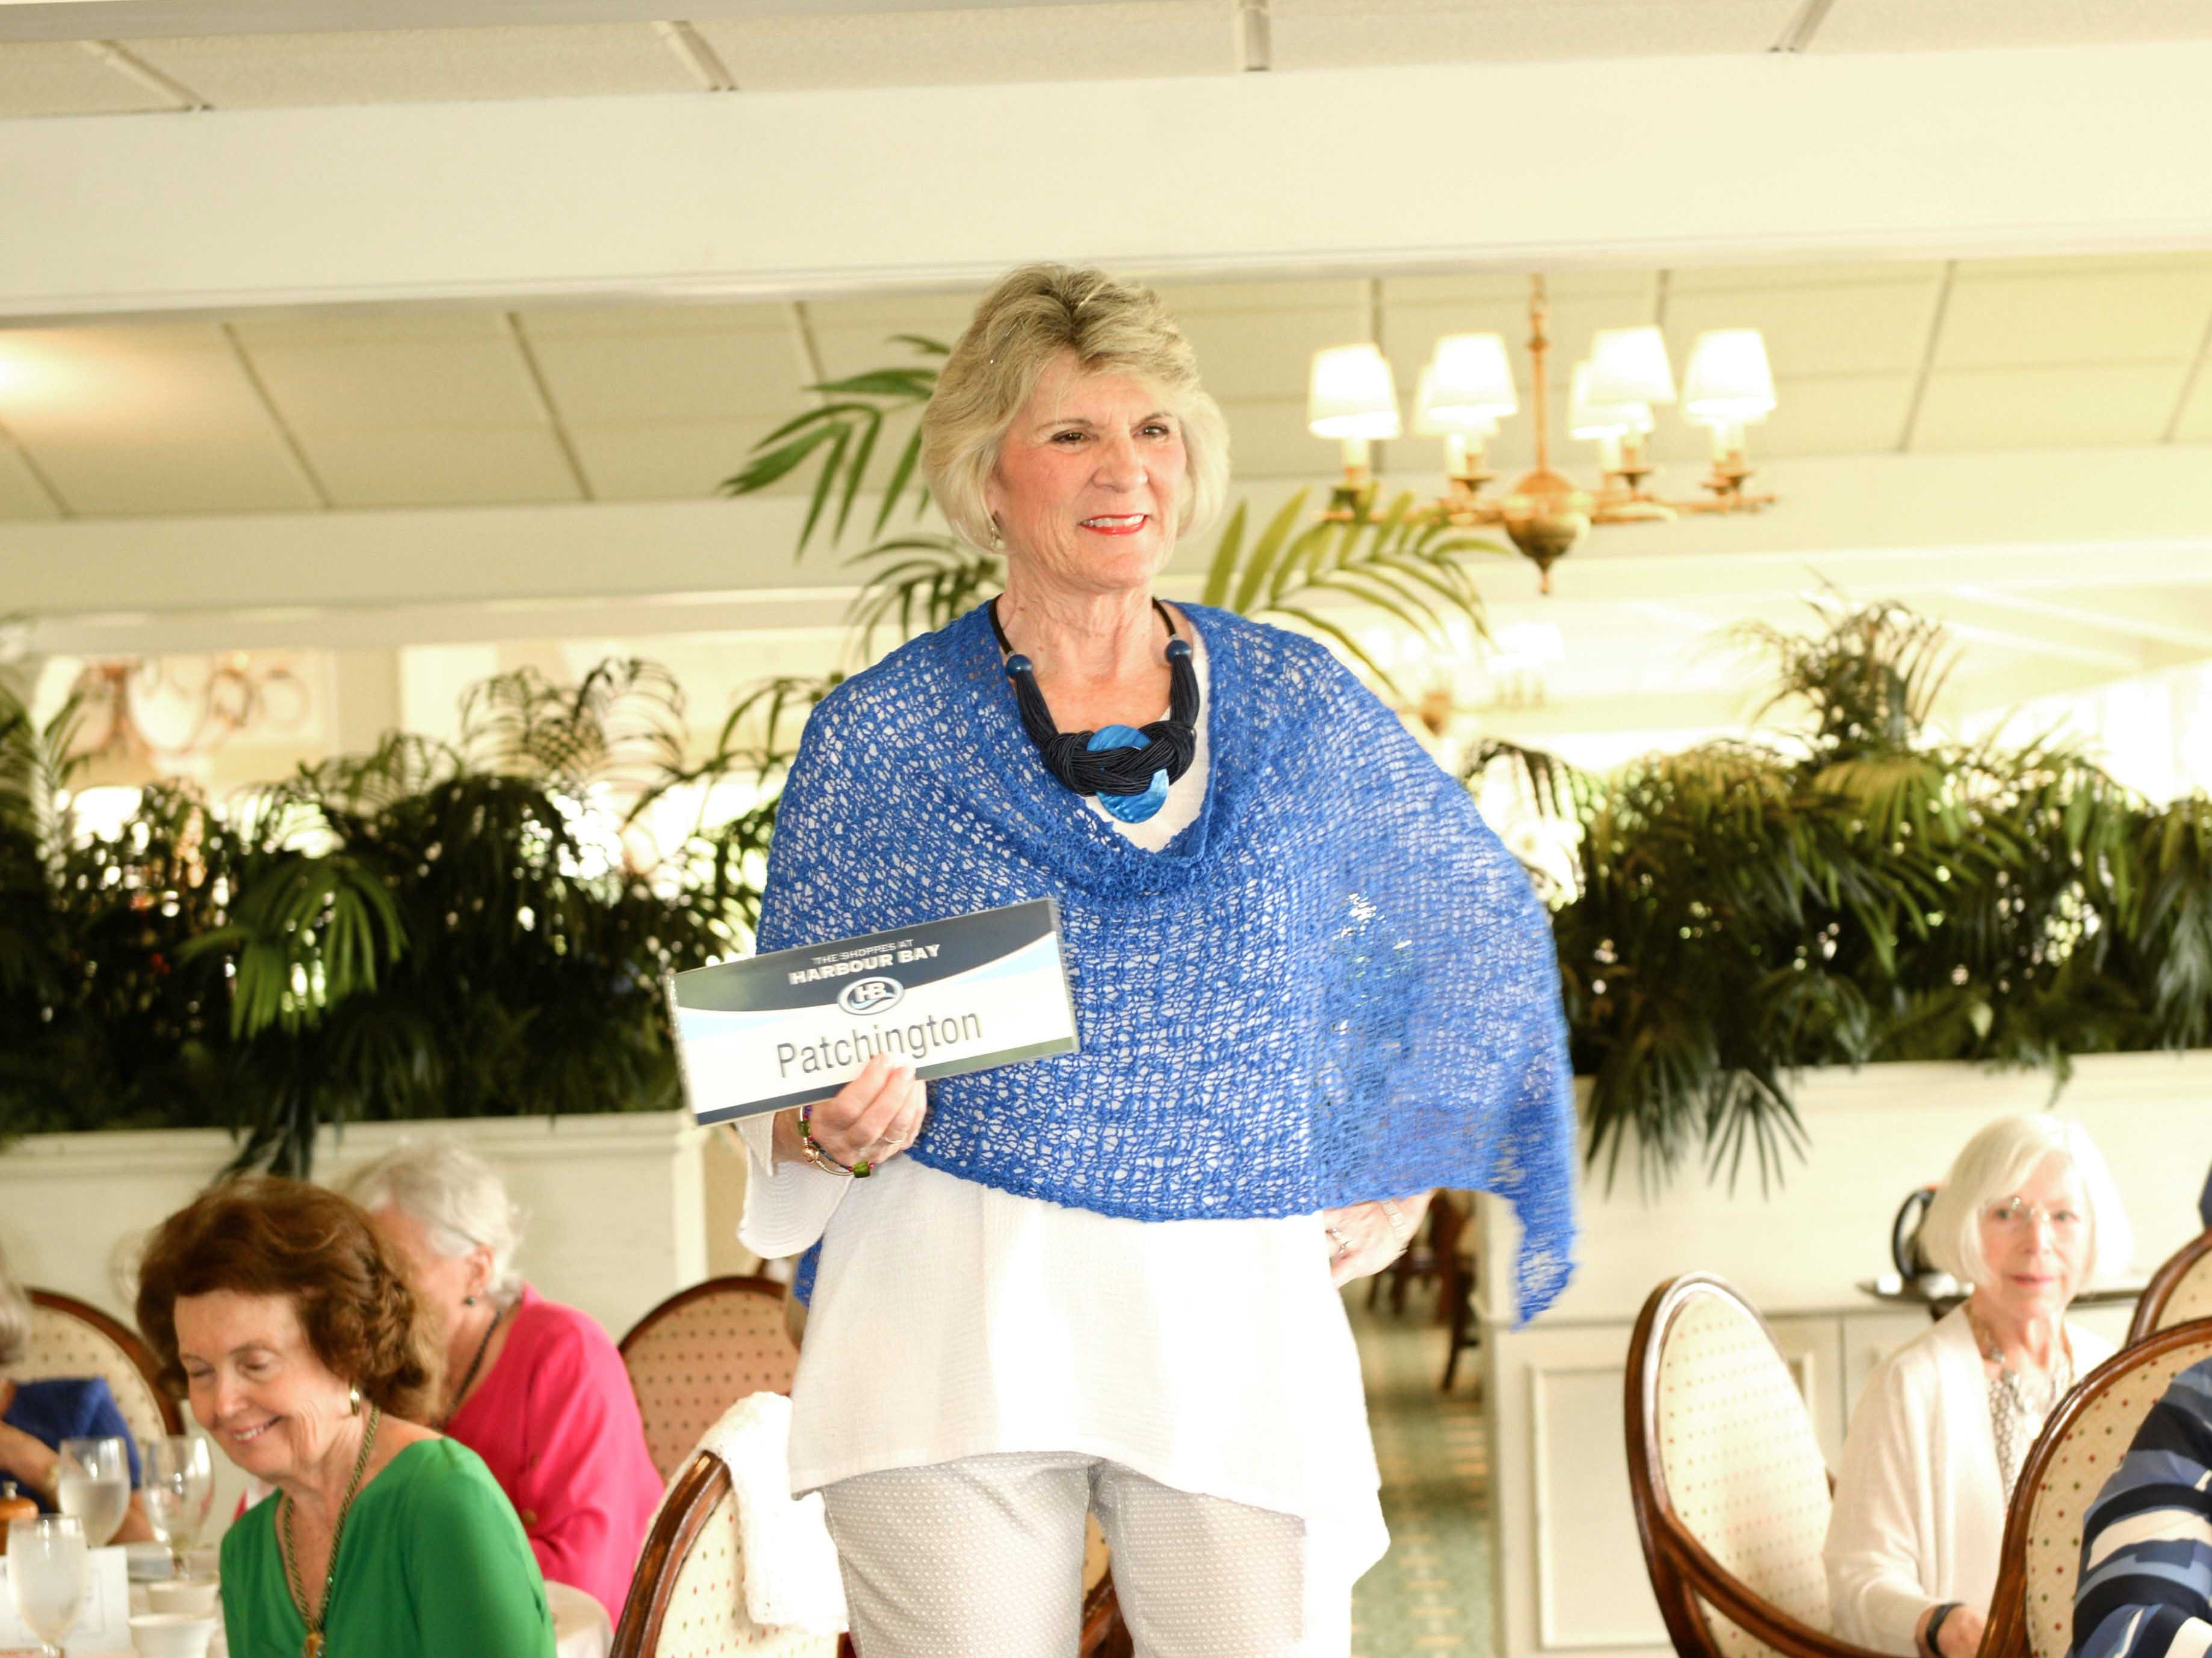 Pat Miller models an outfit from Patchington at the Sapphire Anniversary party of the American Association of University Women Stuart Branch.